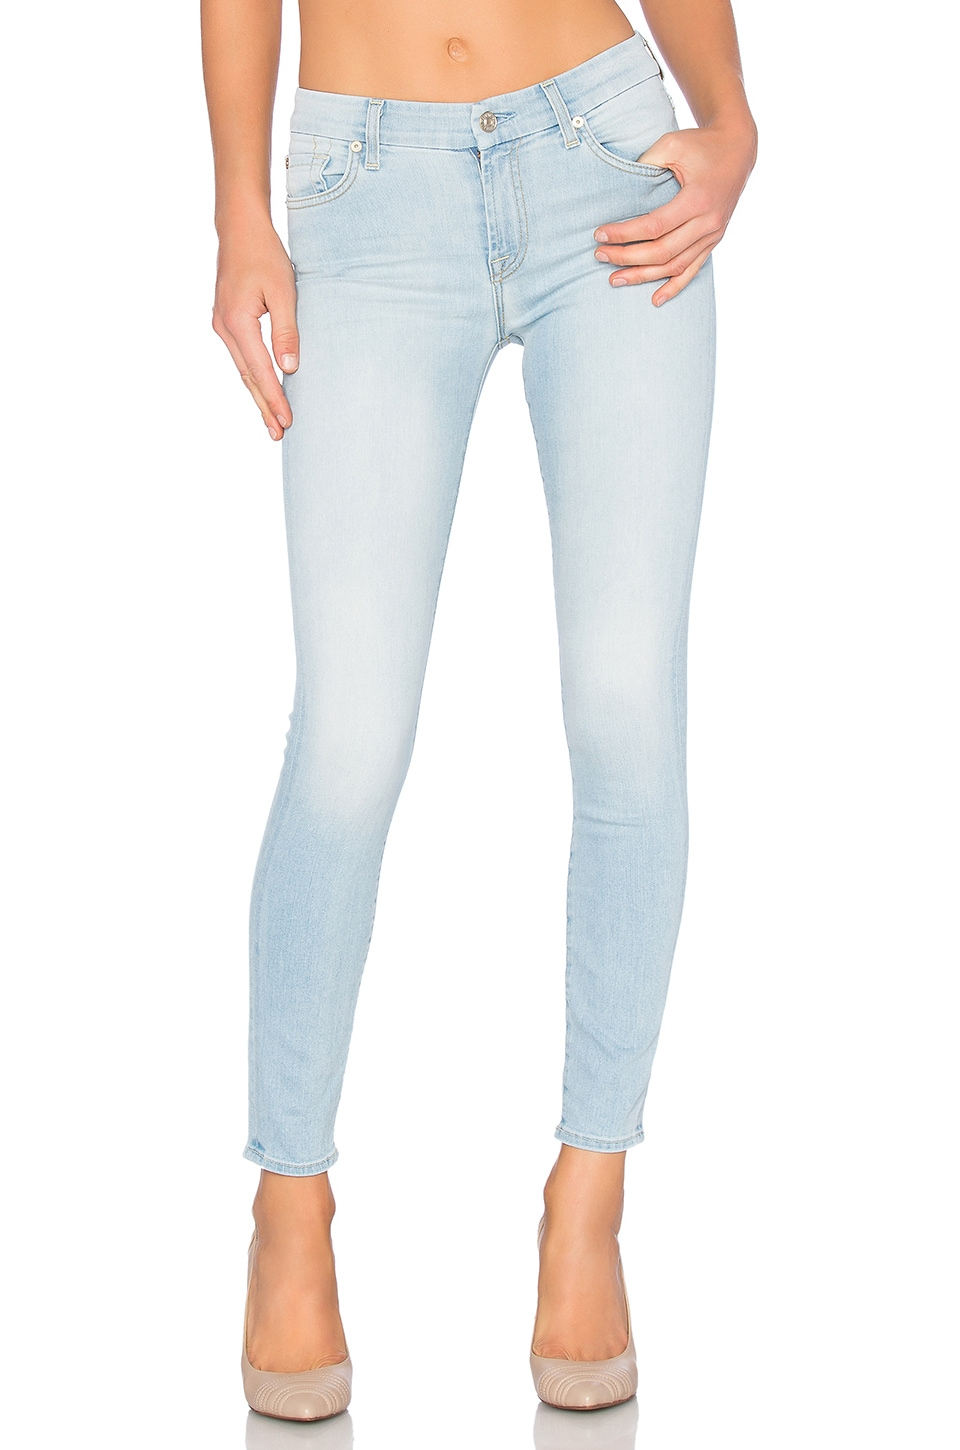 7 For All Mankind The Squiggle Ankle Skinny in Daylight Blue